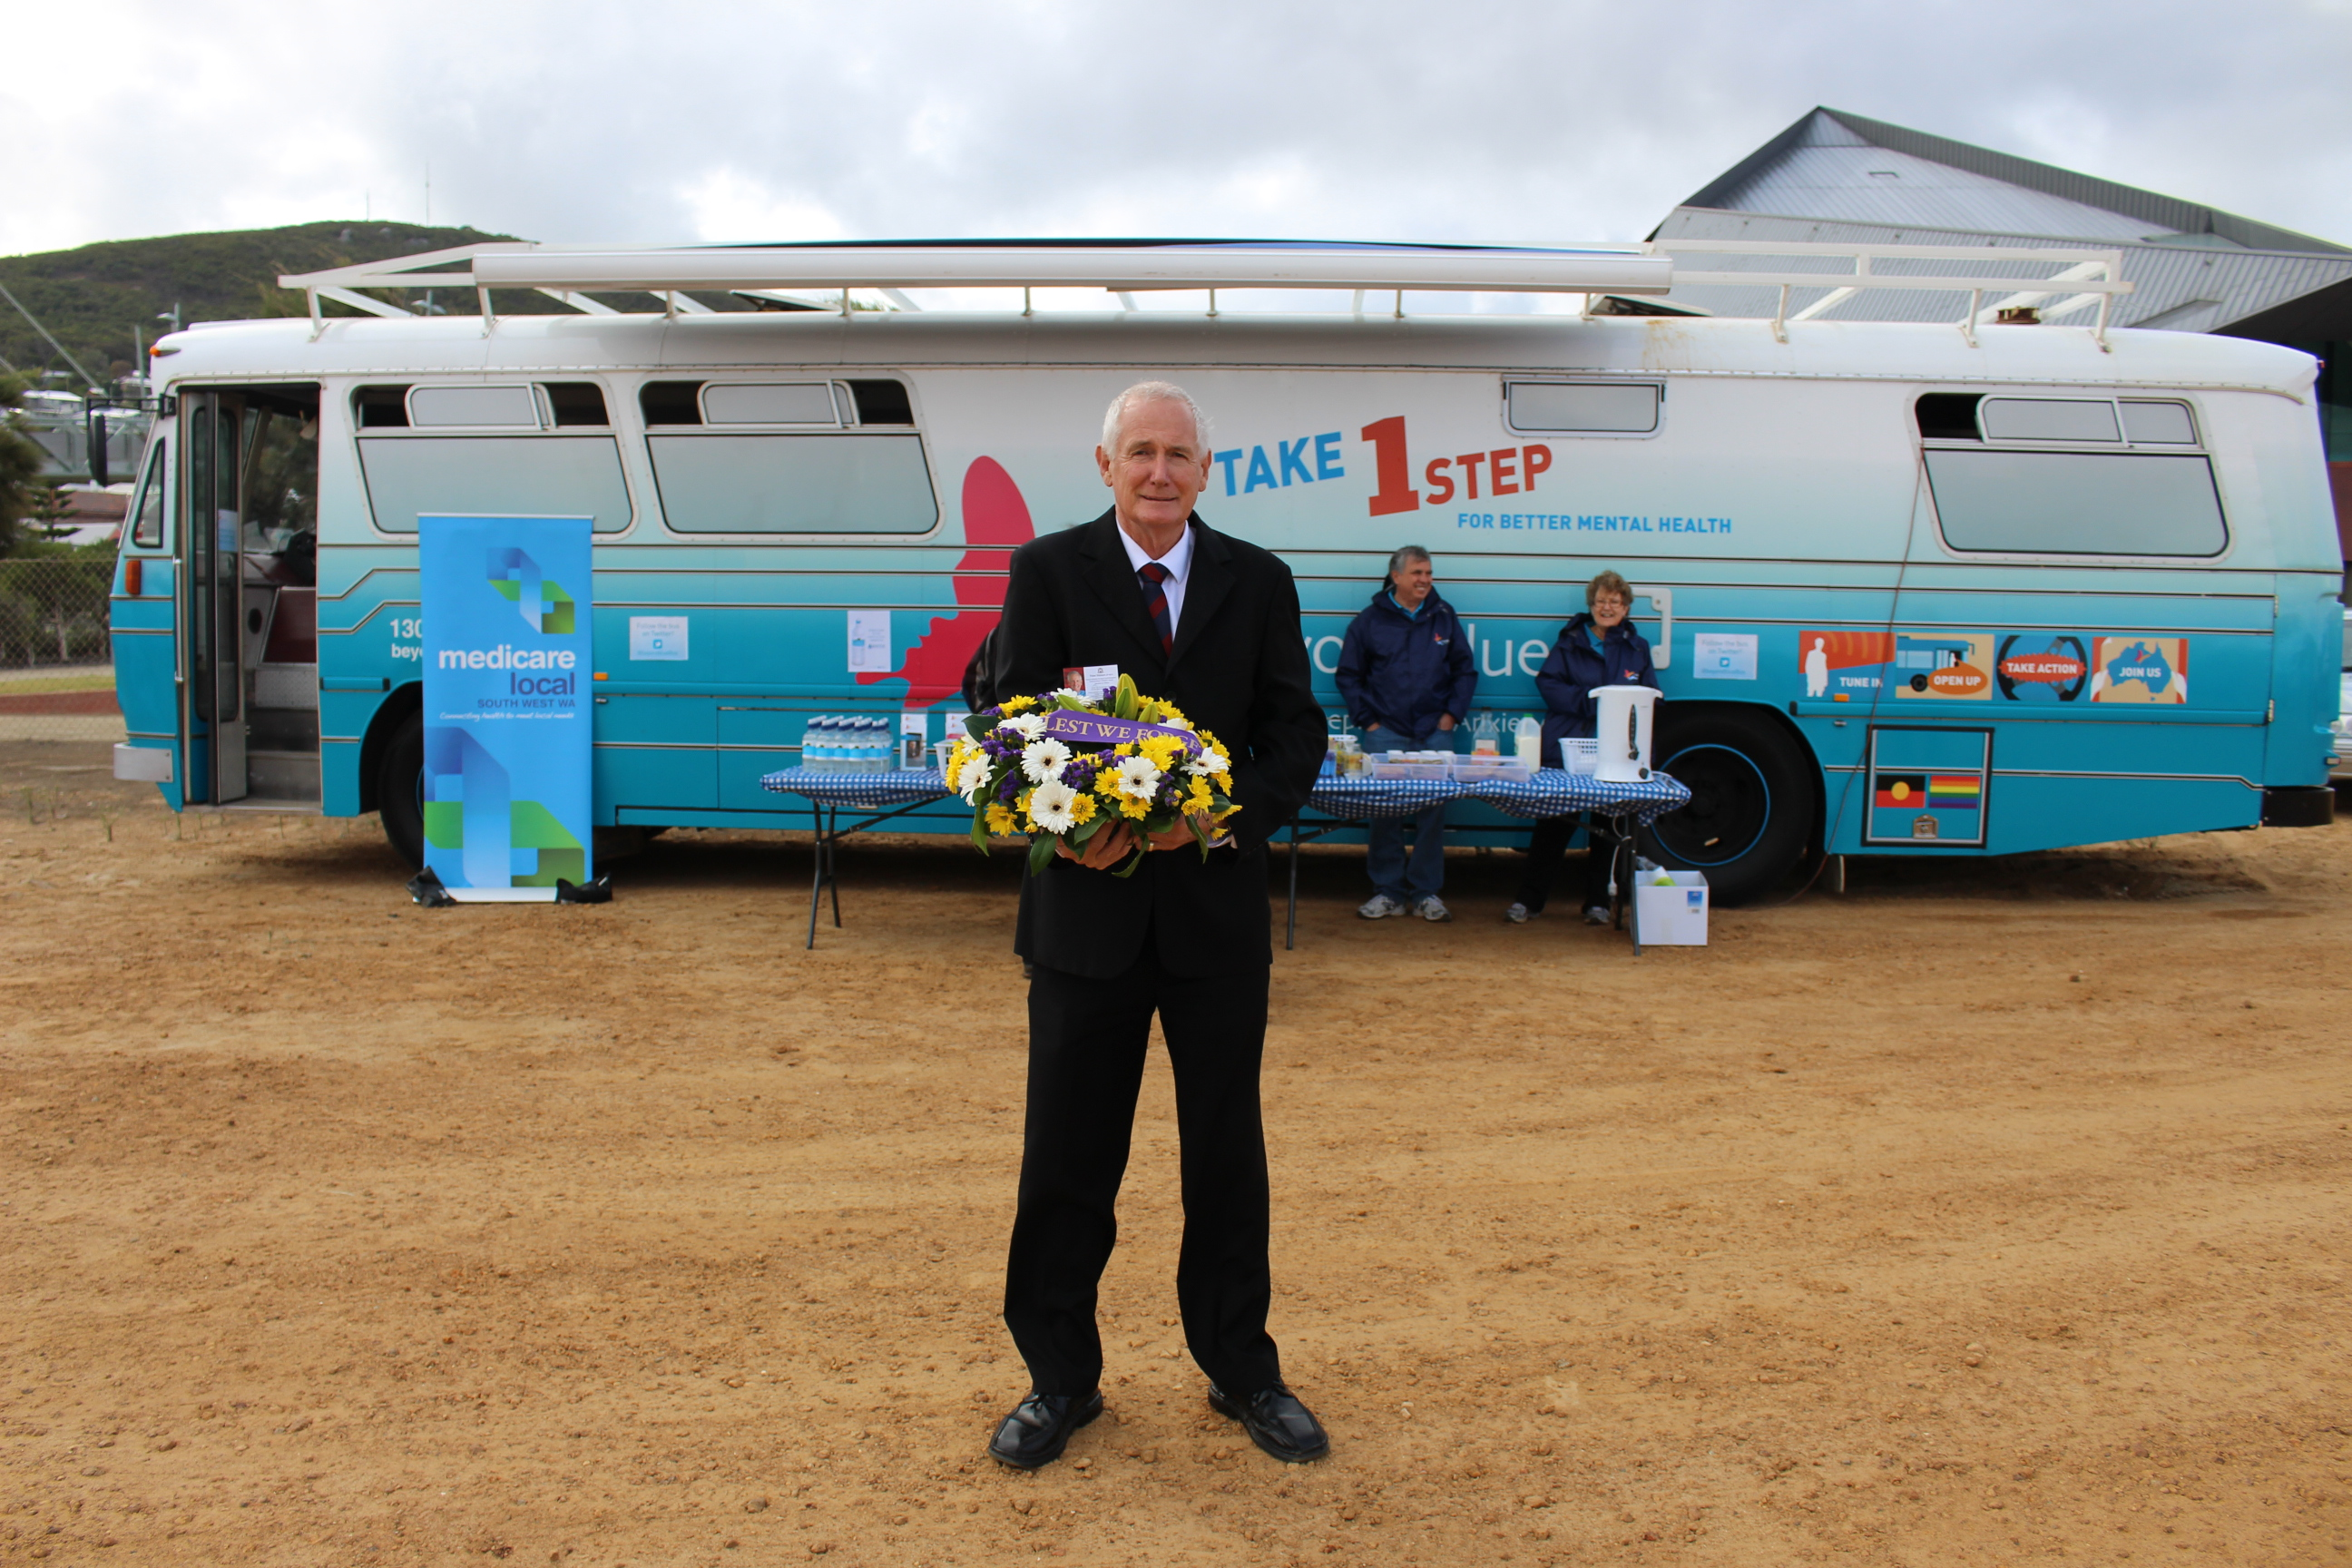 Member for Albany Peter Watson with a wreath to lay for Anzac Day in Albany: WA.